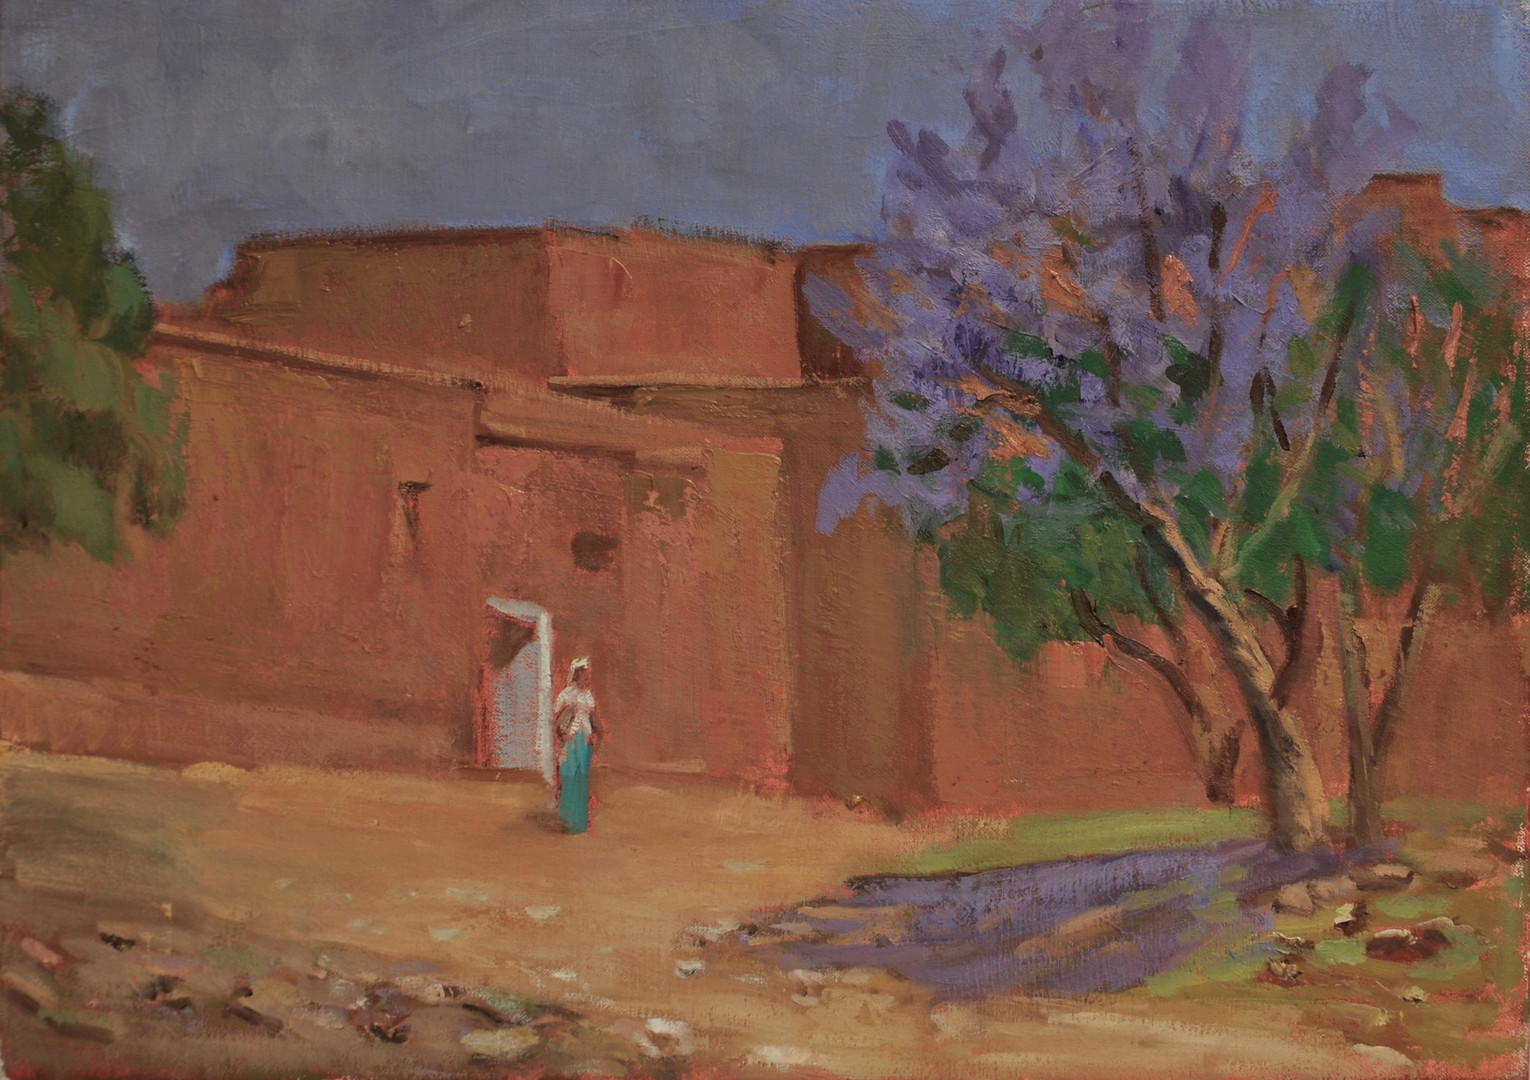 Moroccan Adobe Houses